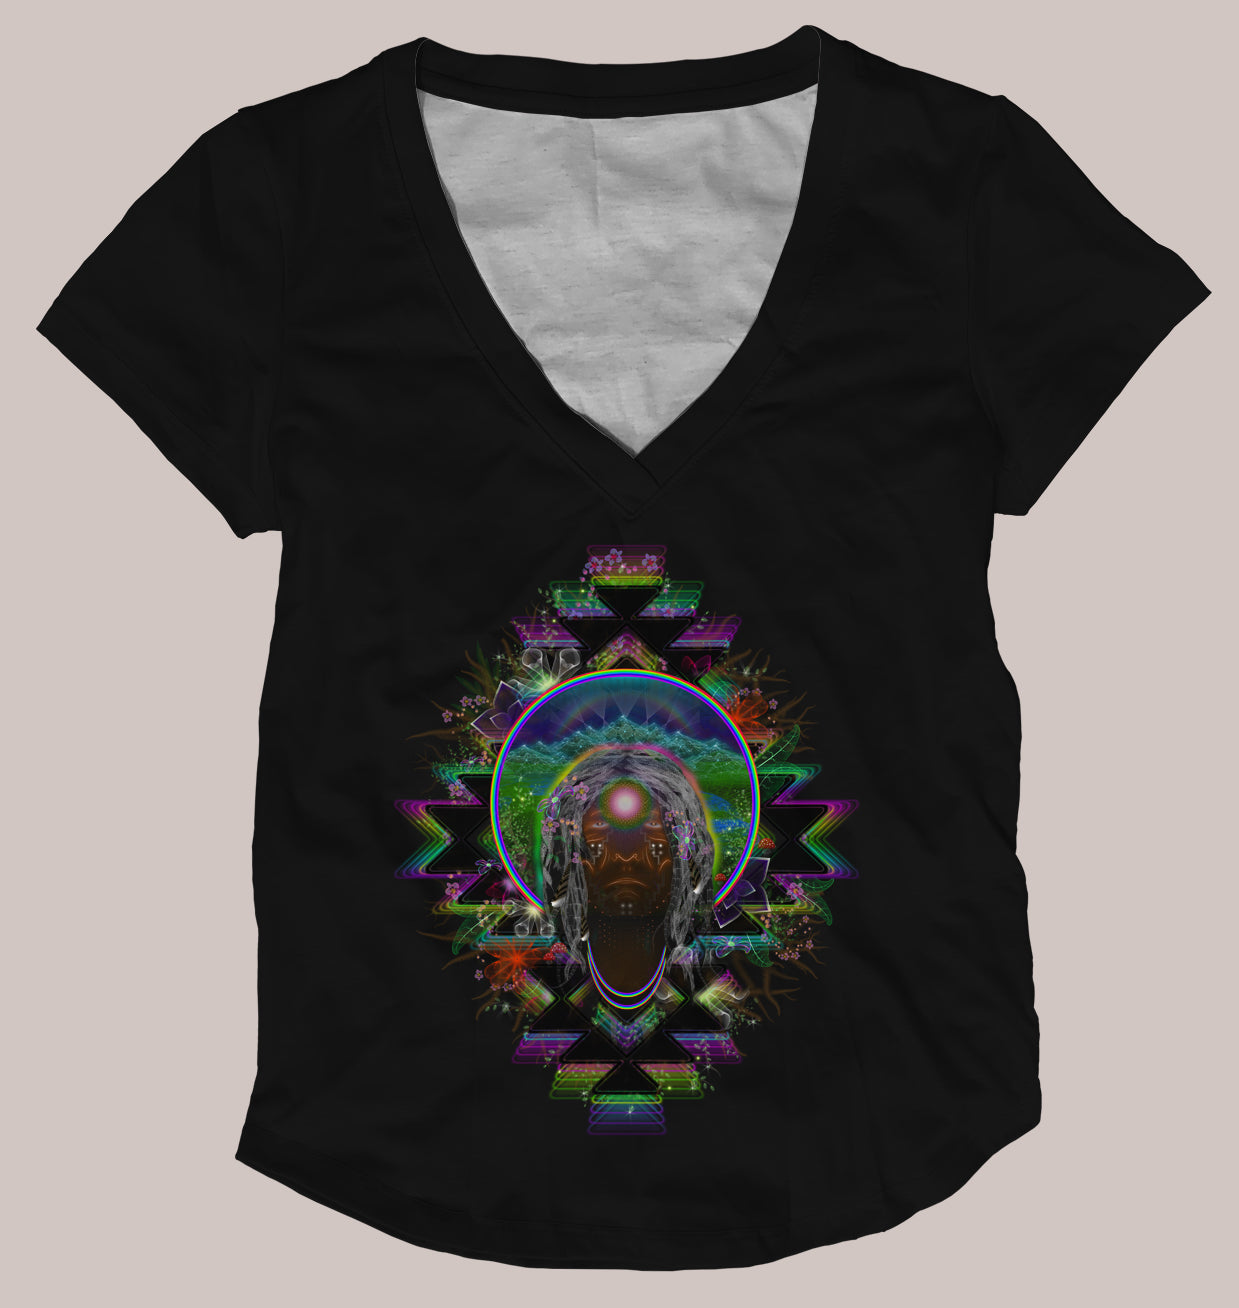 Mother Earth Women's Signature Shirt